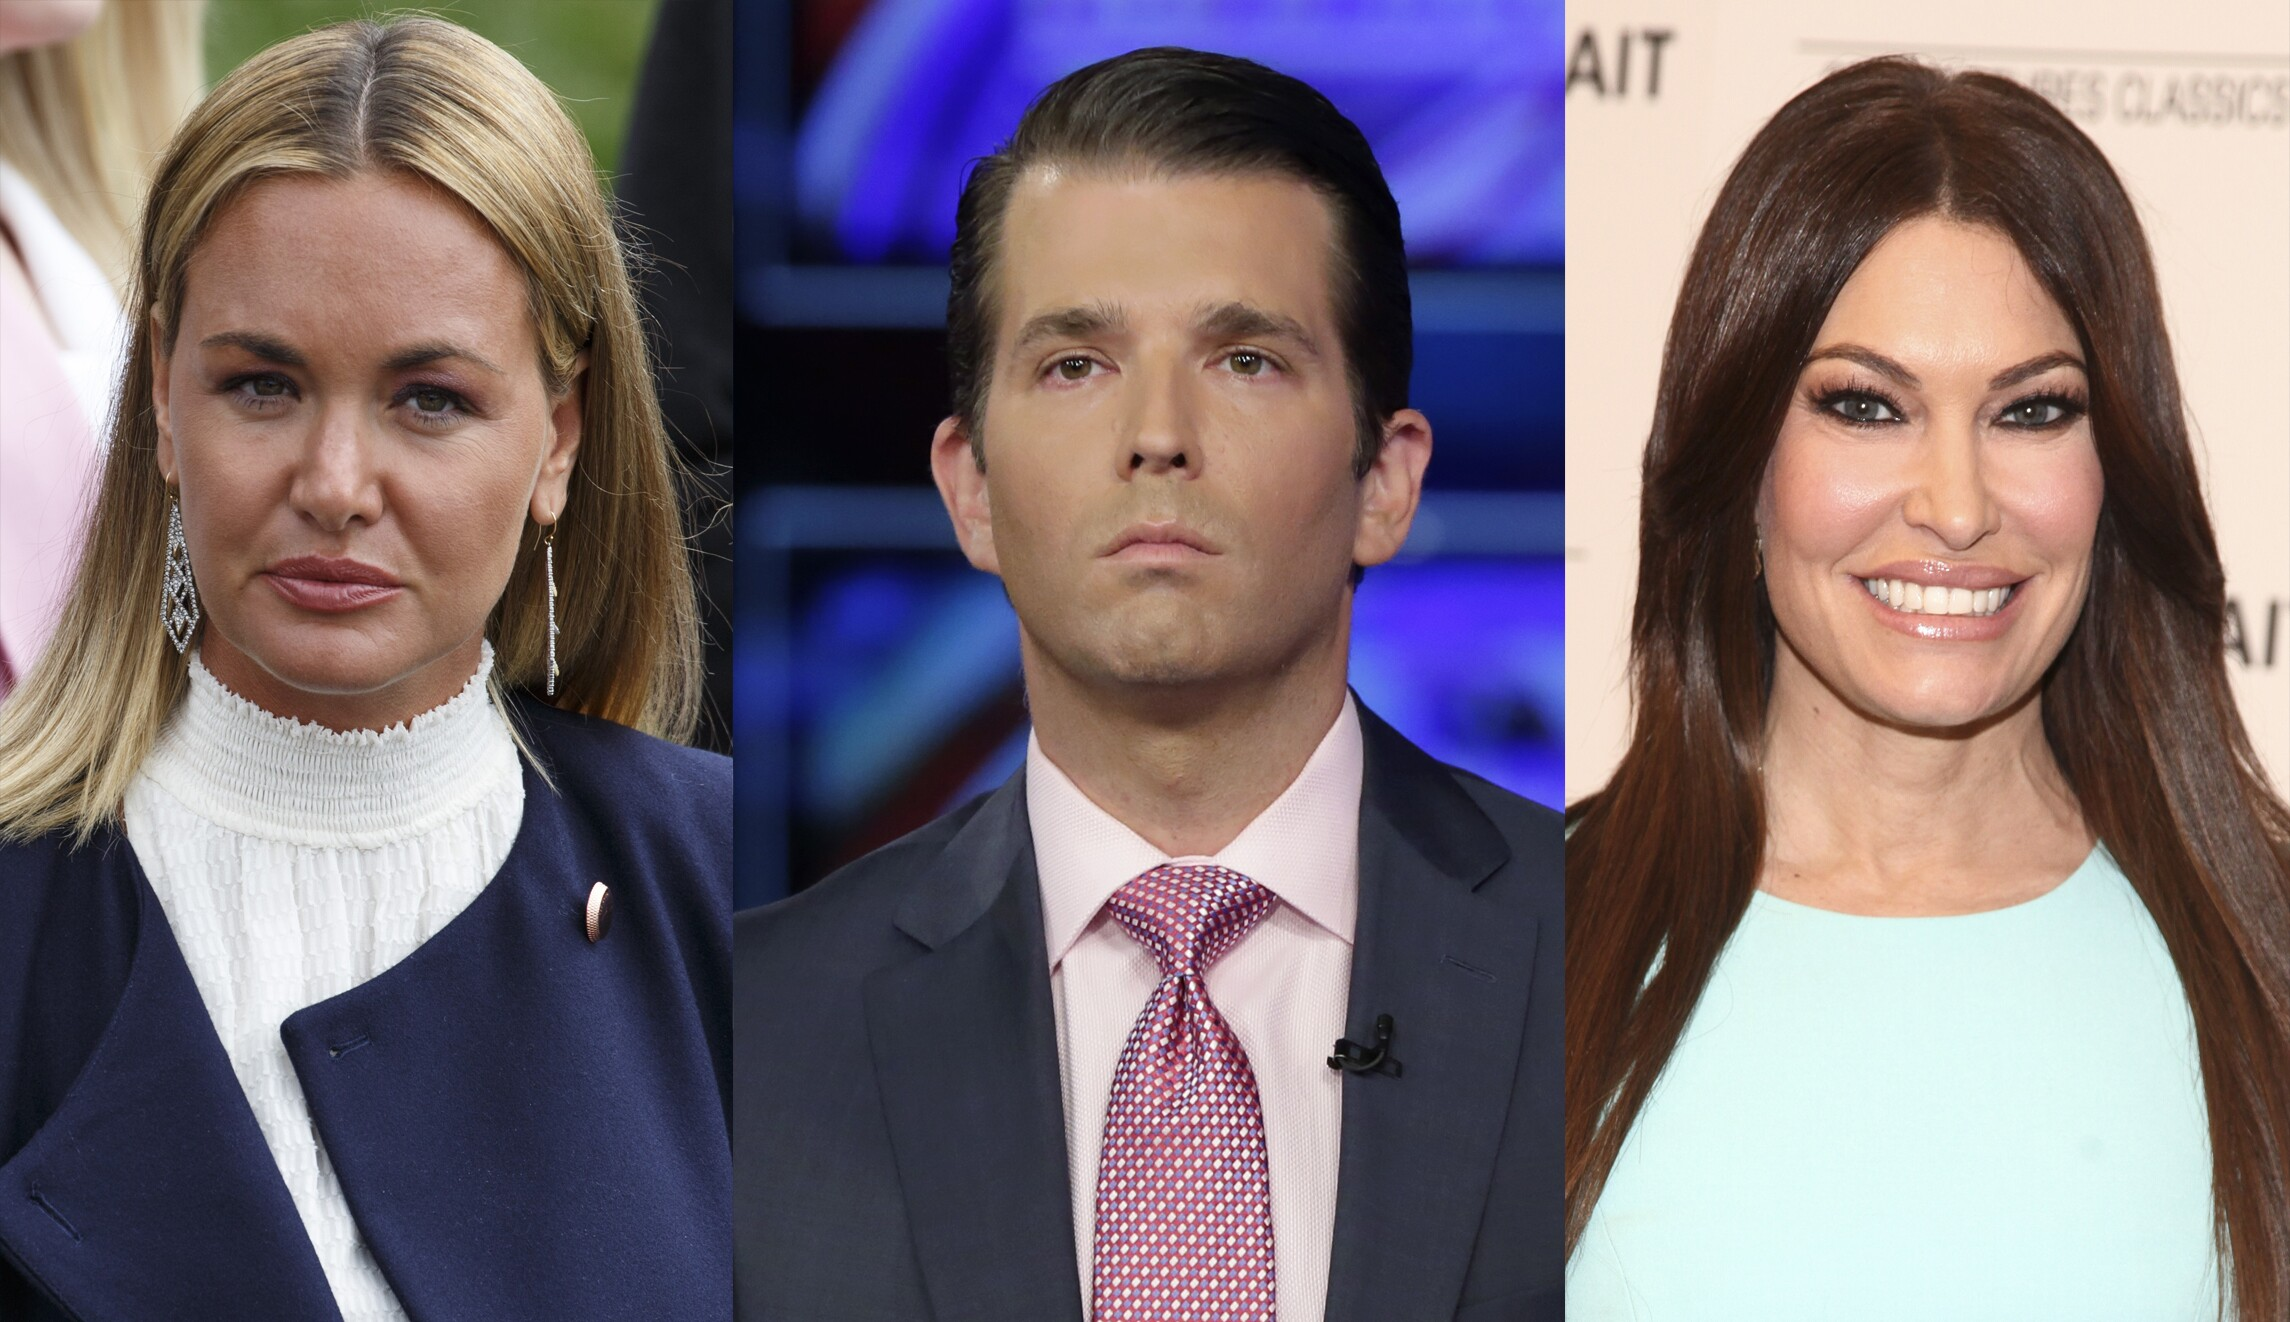 Vanessa Trump Skewers Medias Coverage Of Trump Jr Kimberly Guilfoyle Romance Rumors